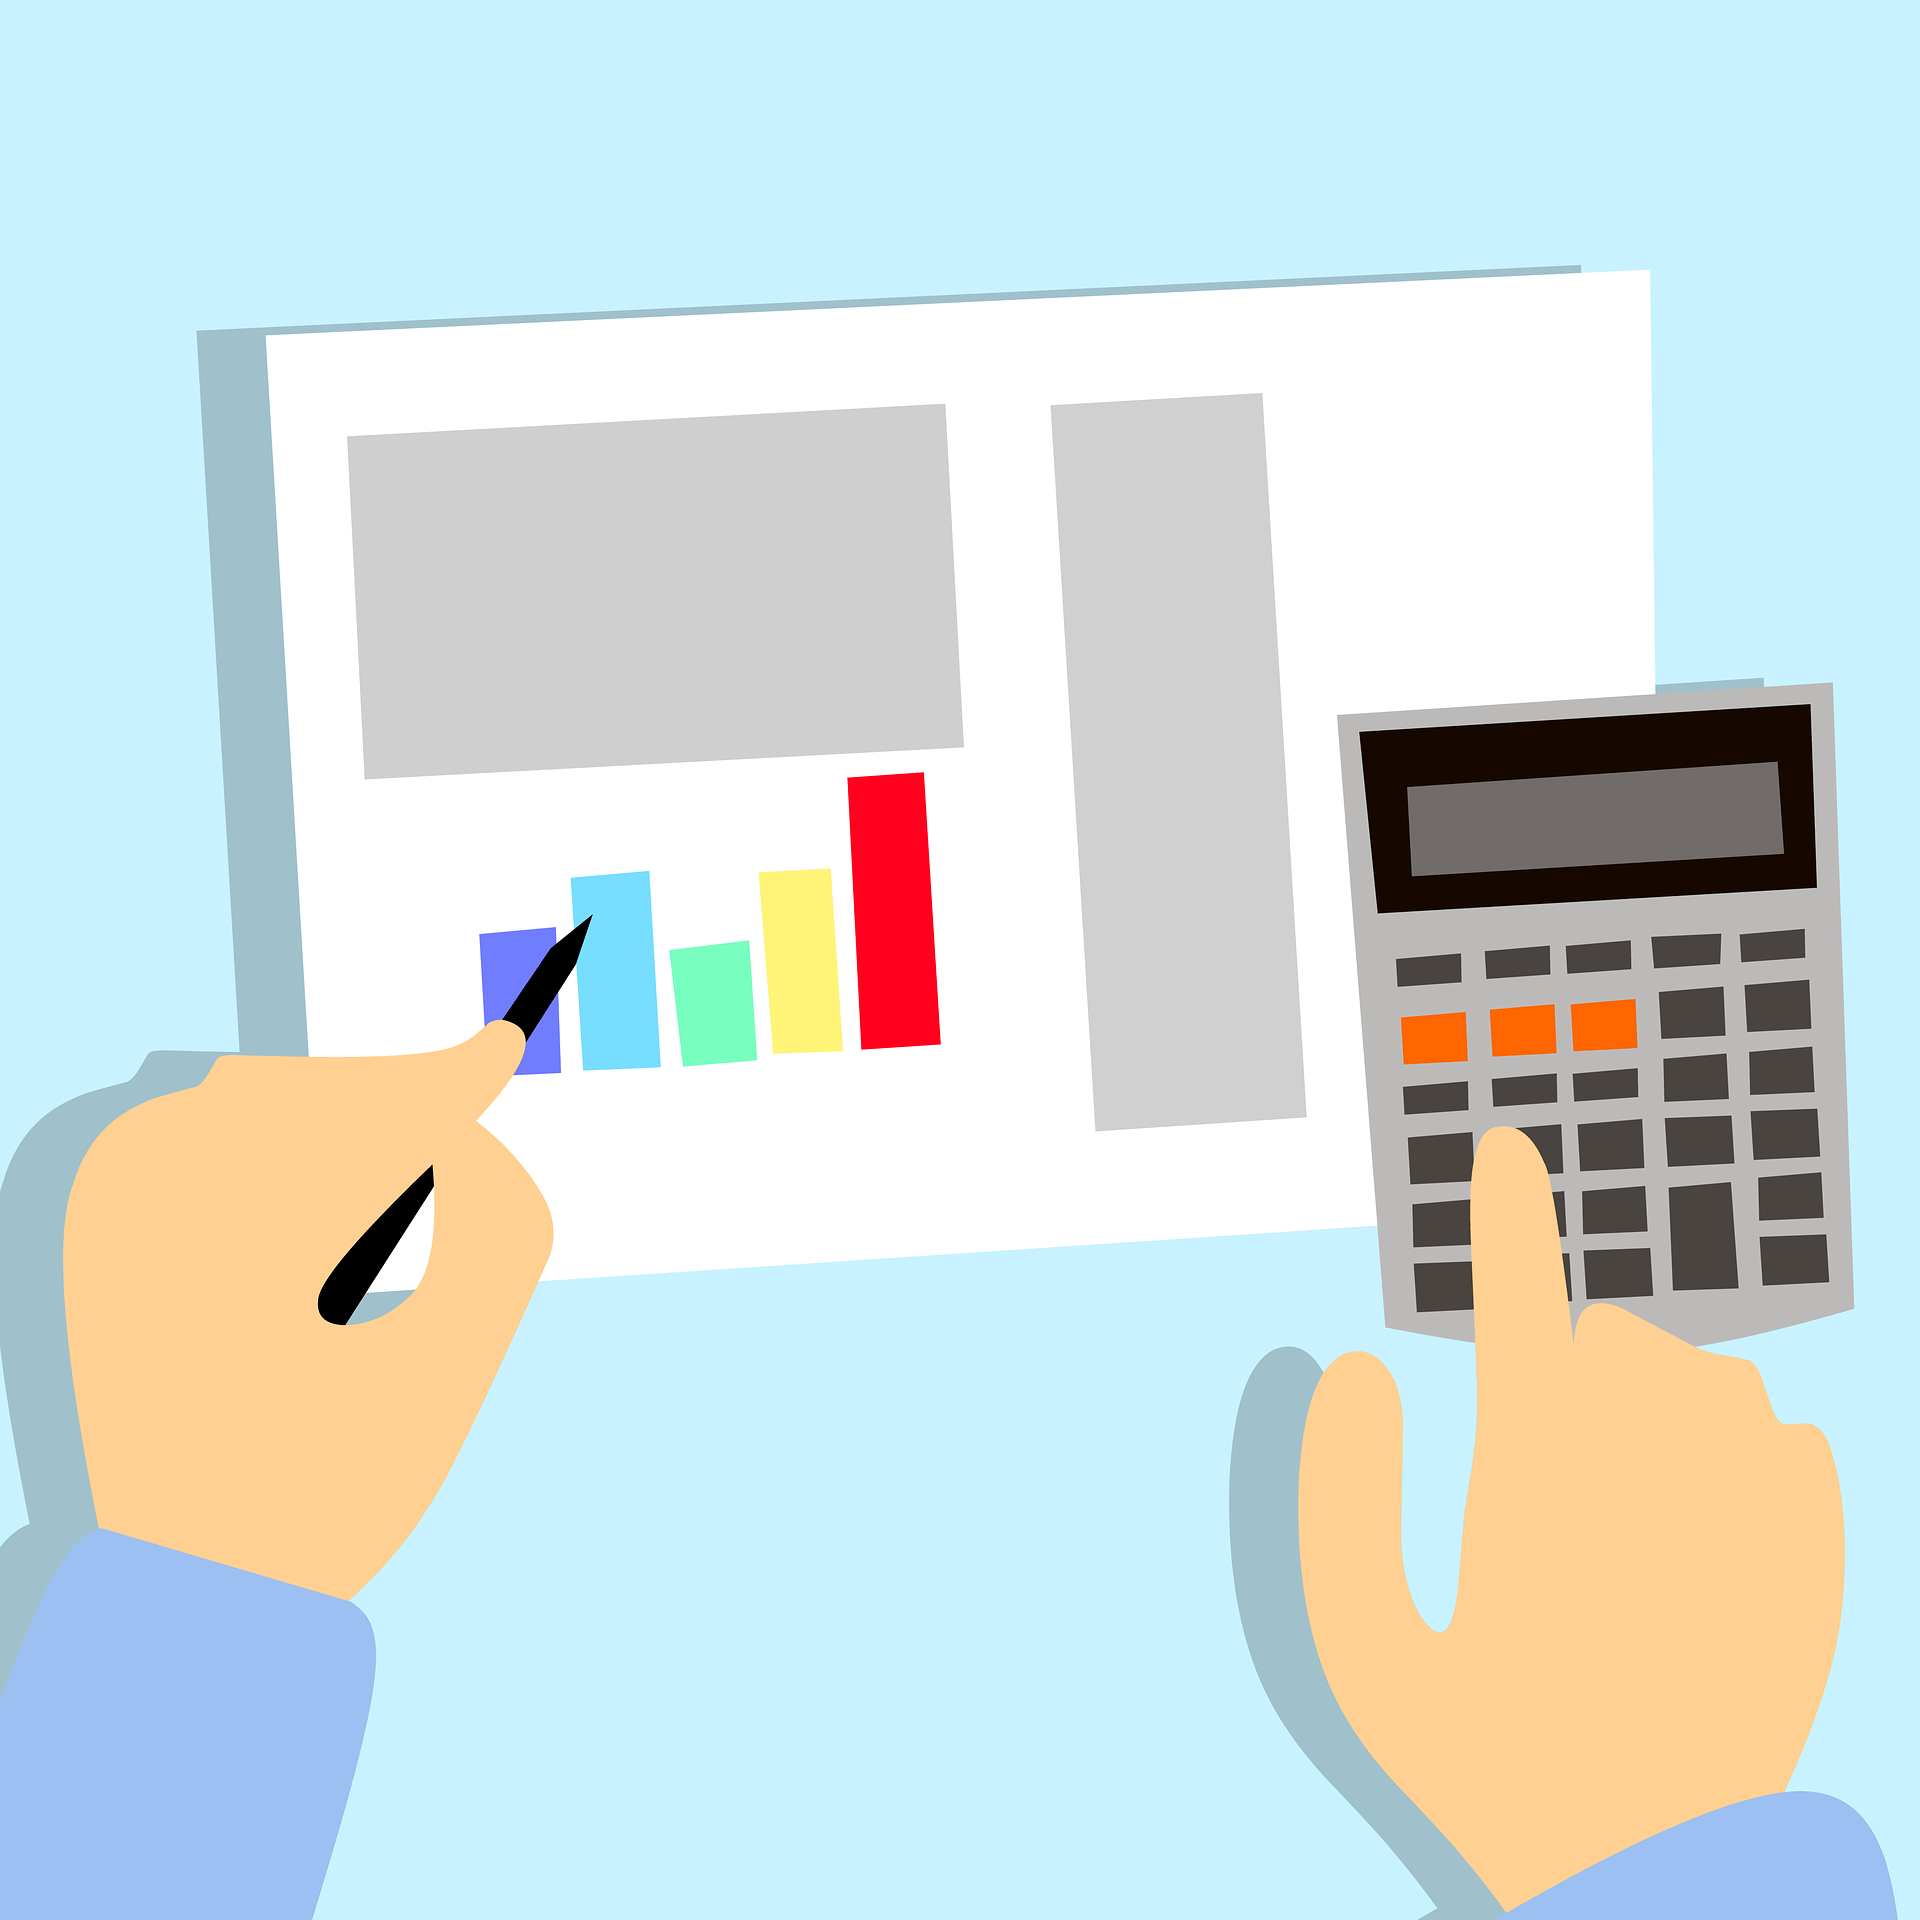 How to Calculate the Value of a Click in PPC?